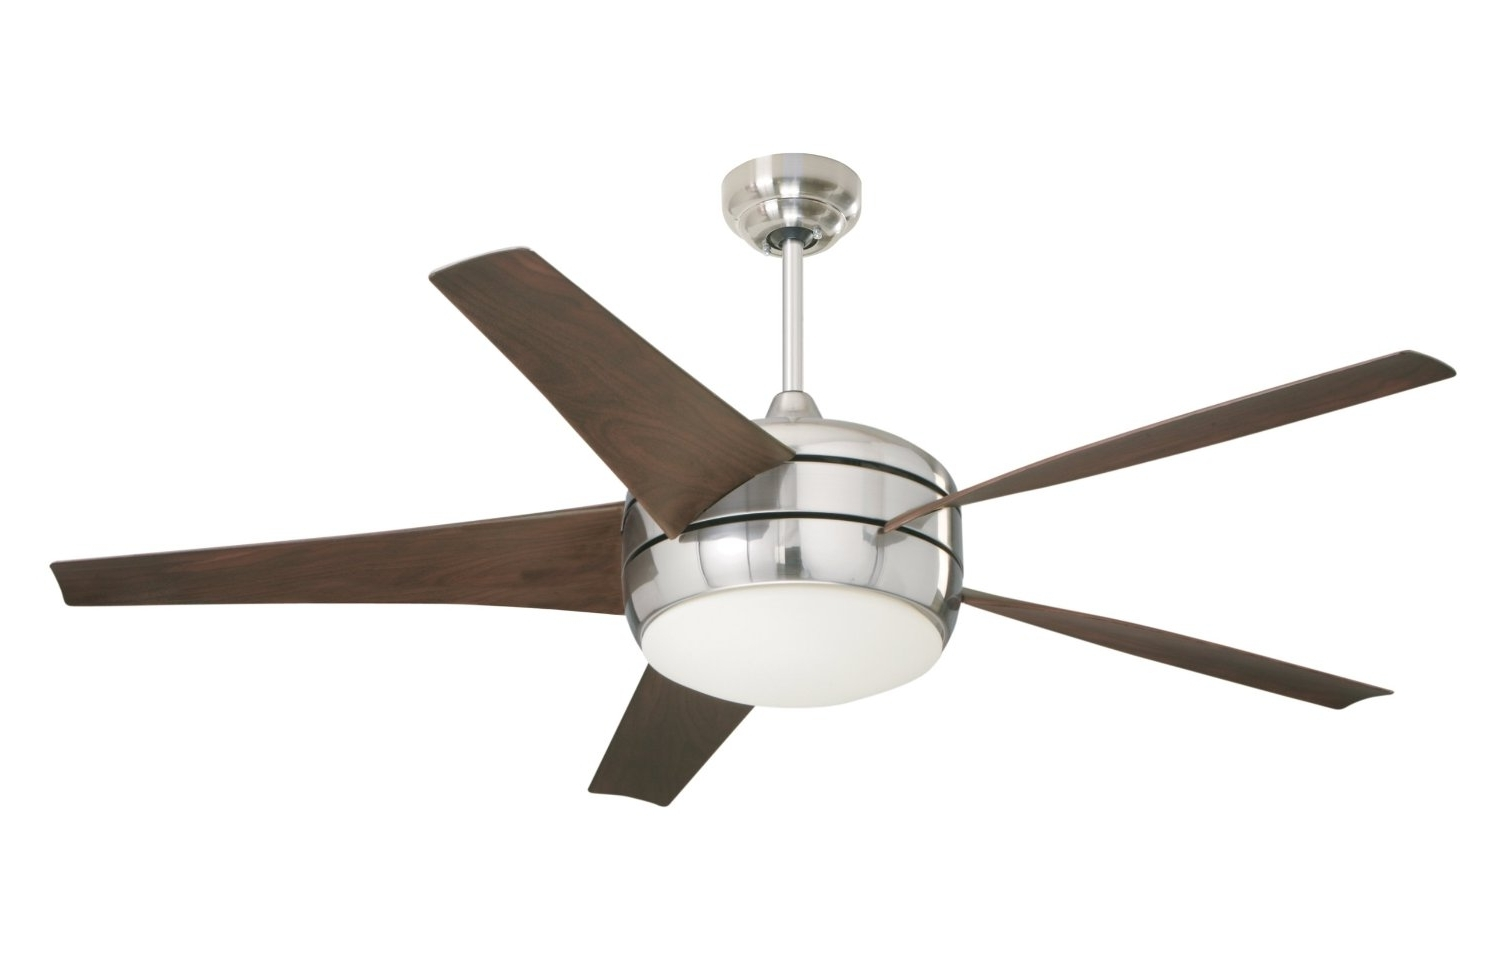 Best Ceiling Fans Reviews, Buying Guide And Comparison 2018 Throughout Preferred Outdoor Ceiling Fans With High Cfm (View 3 of 20)